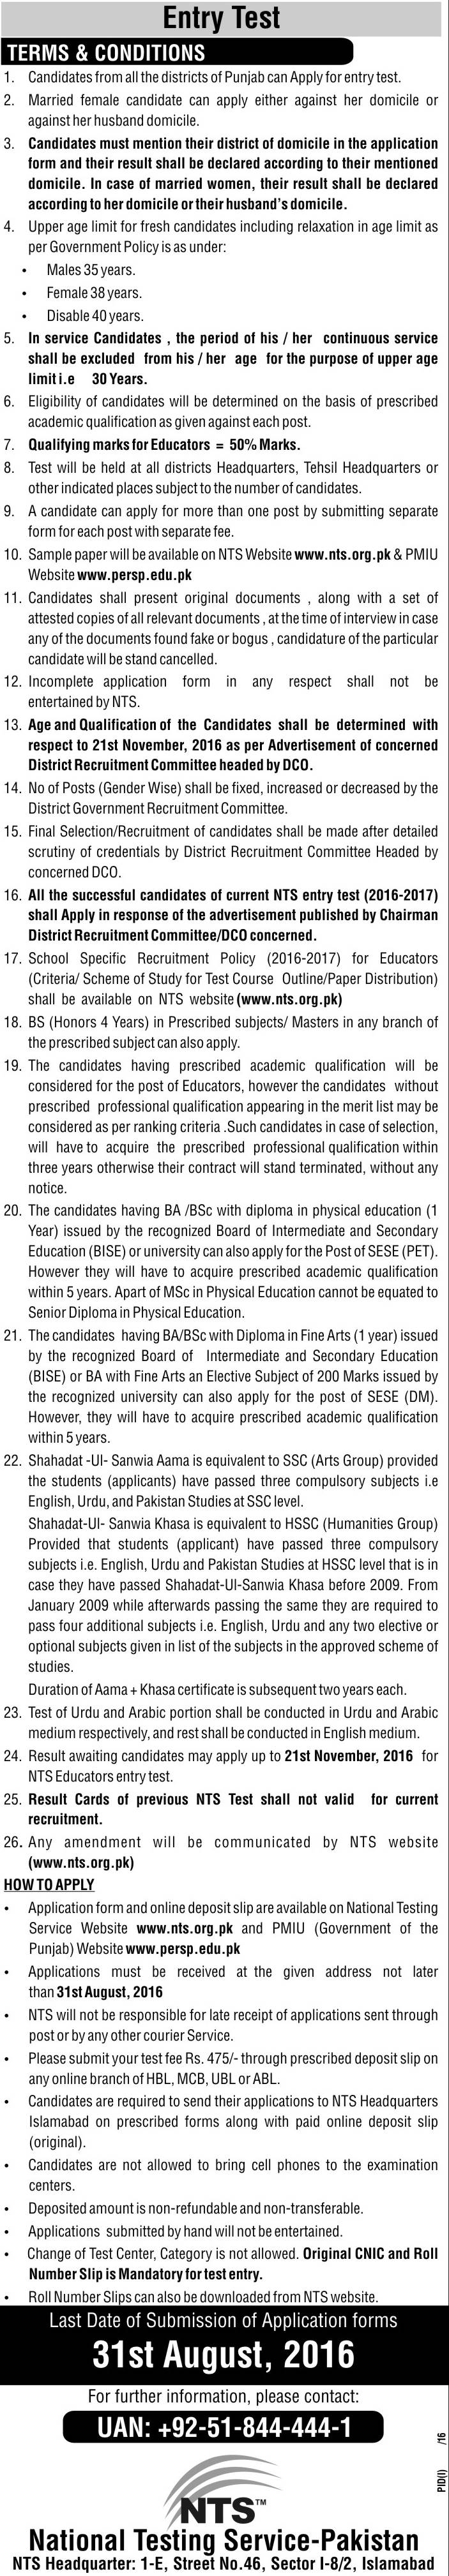 Educator jobs 2016 terms and conditions for candidates for post and NTS test